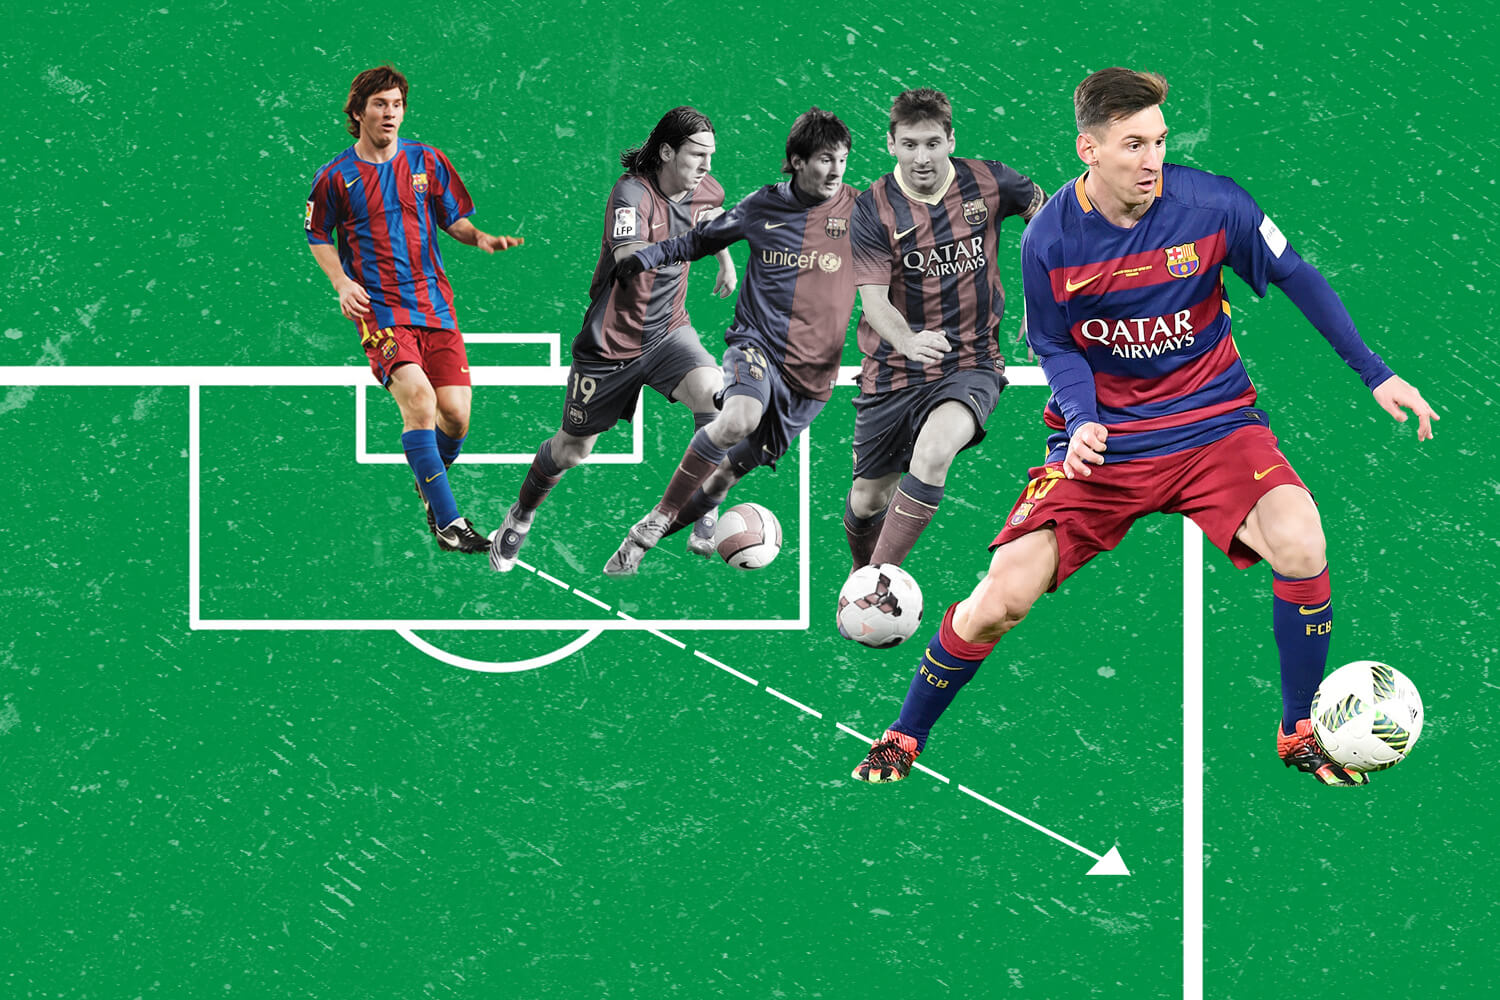 Real Madrid: ALL SPORTS CELEBRITIES: Lionel Messi Amaizing HD